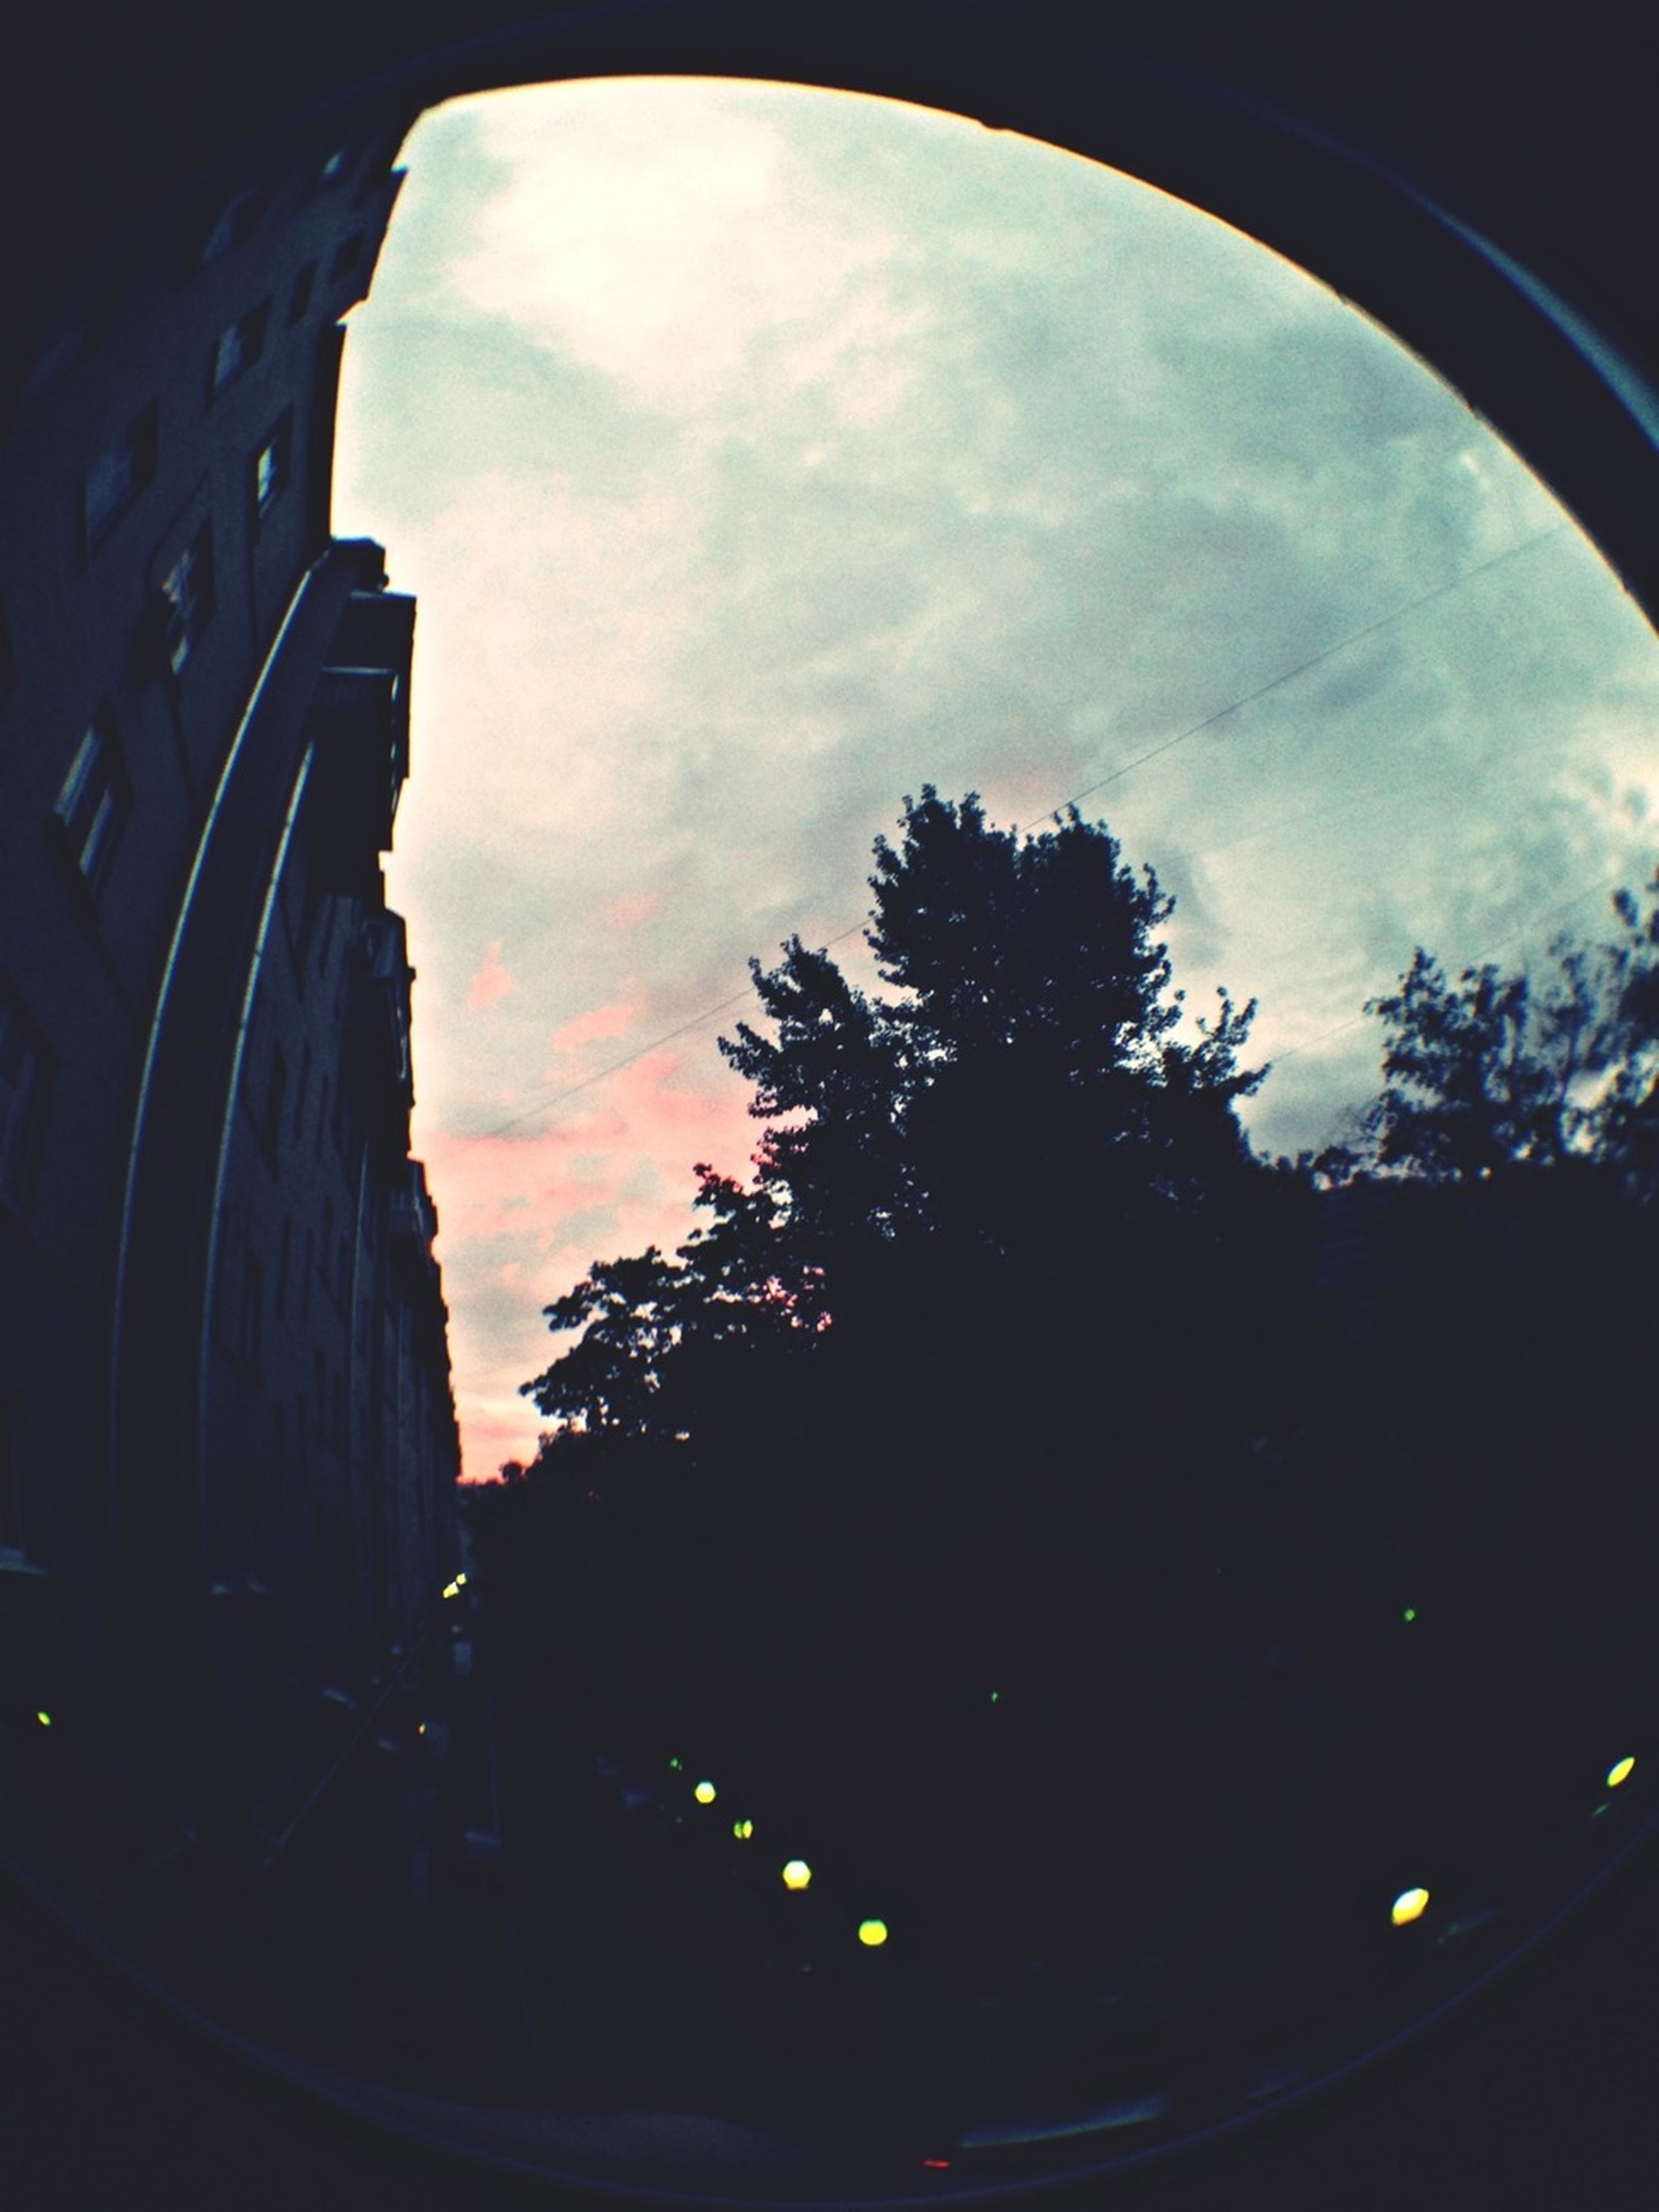 sky, cloud - sky, silhouette, built structure, architecture, tree, cloudy, low angle view, cloud, building exterior, arch, dusk, sunset, transportation, no people, fish-eye lens, window, circle, outdoors, nature